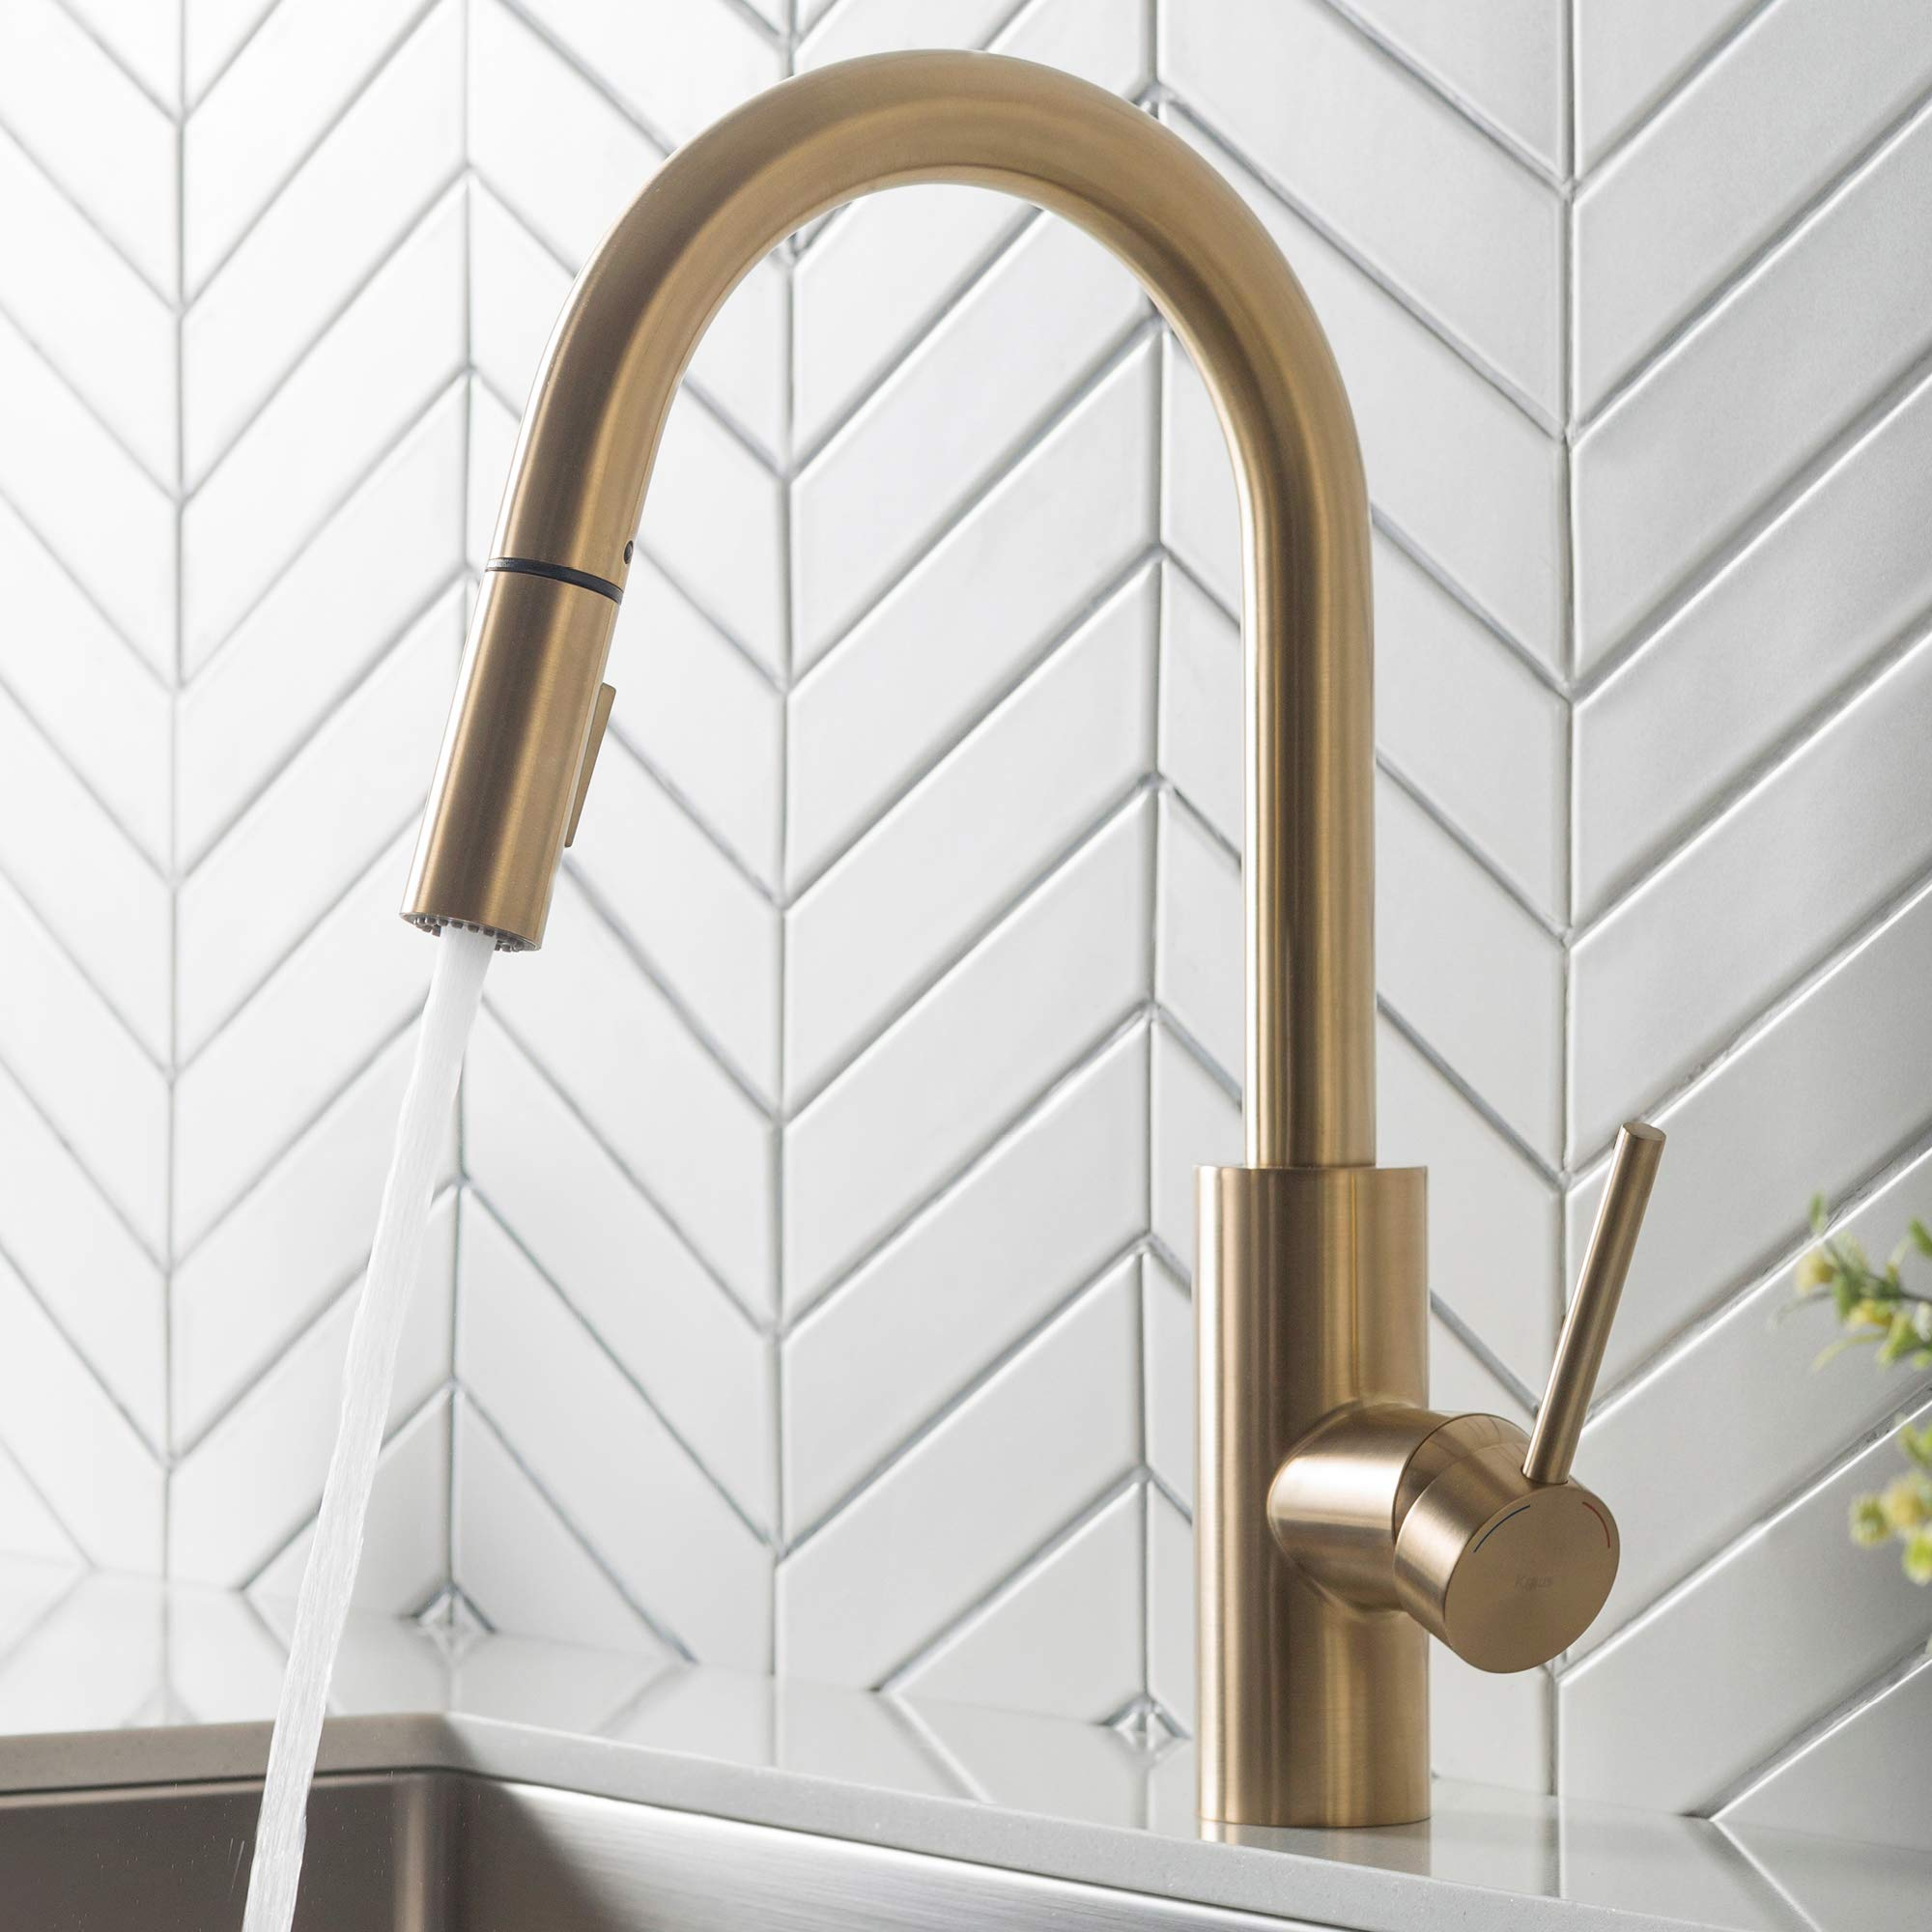 Kraus KPF-2620BG Oletto Kitchen Faucet, in in Gold Finish